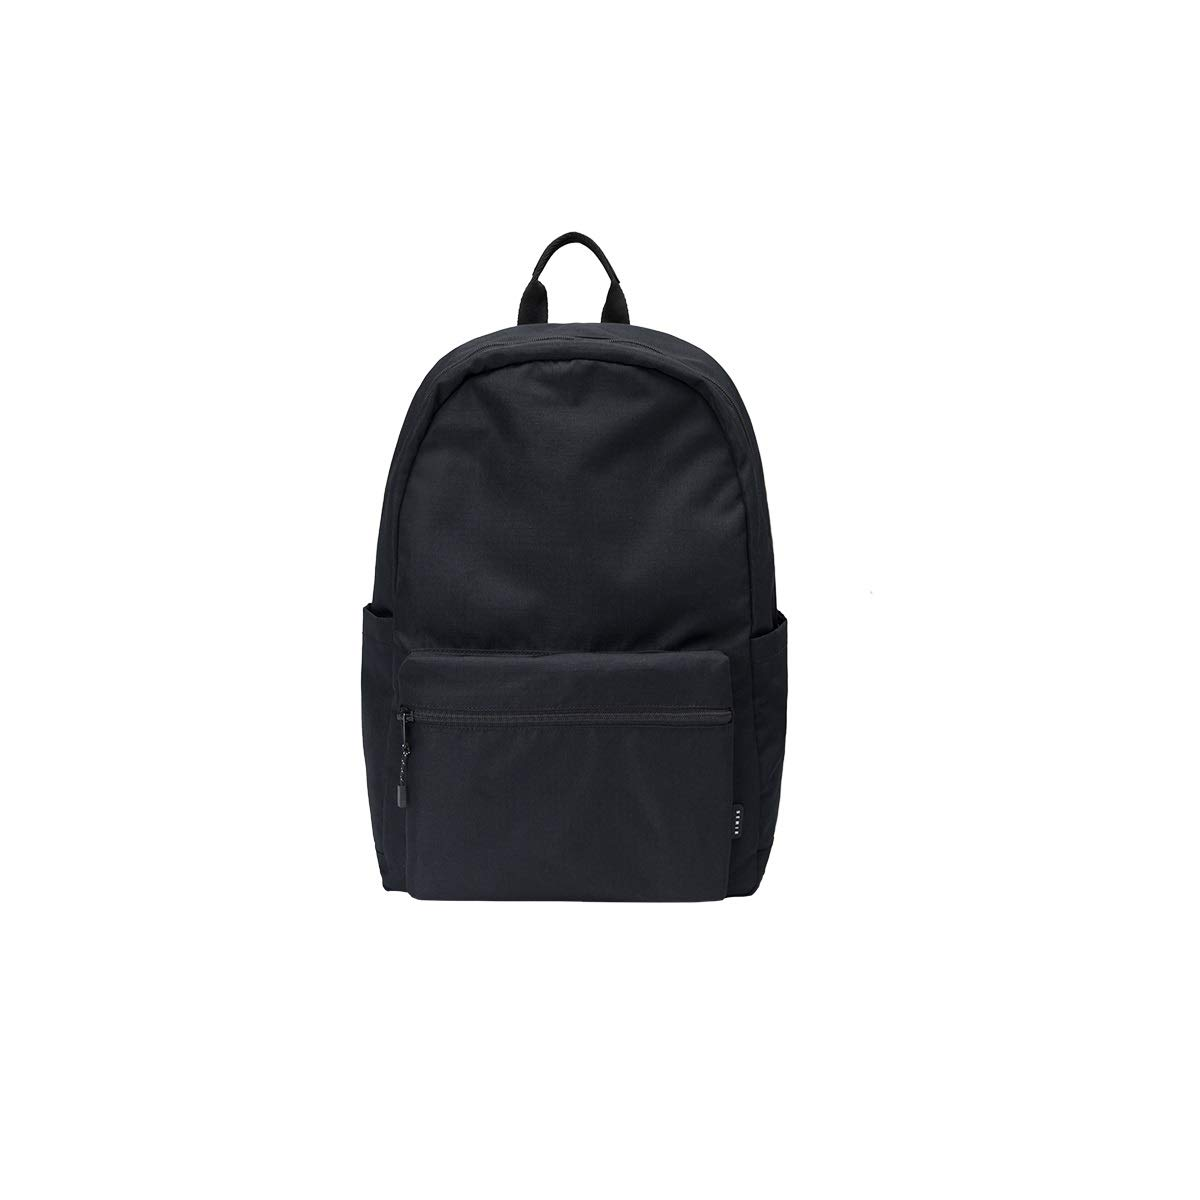 TONGBOSHI Backpack Male, Backpack Casual Simple Trend Travel Bag Female Large Capacity Computer Bag School Bag Male College Student (Color : Black)